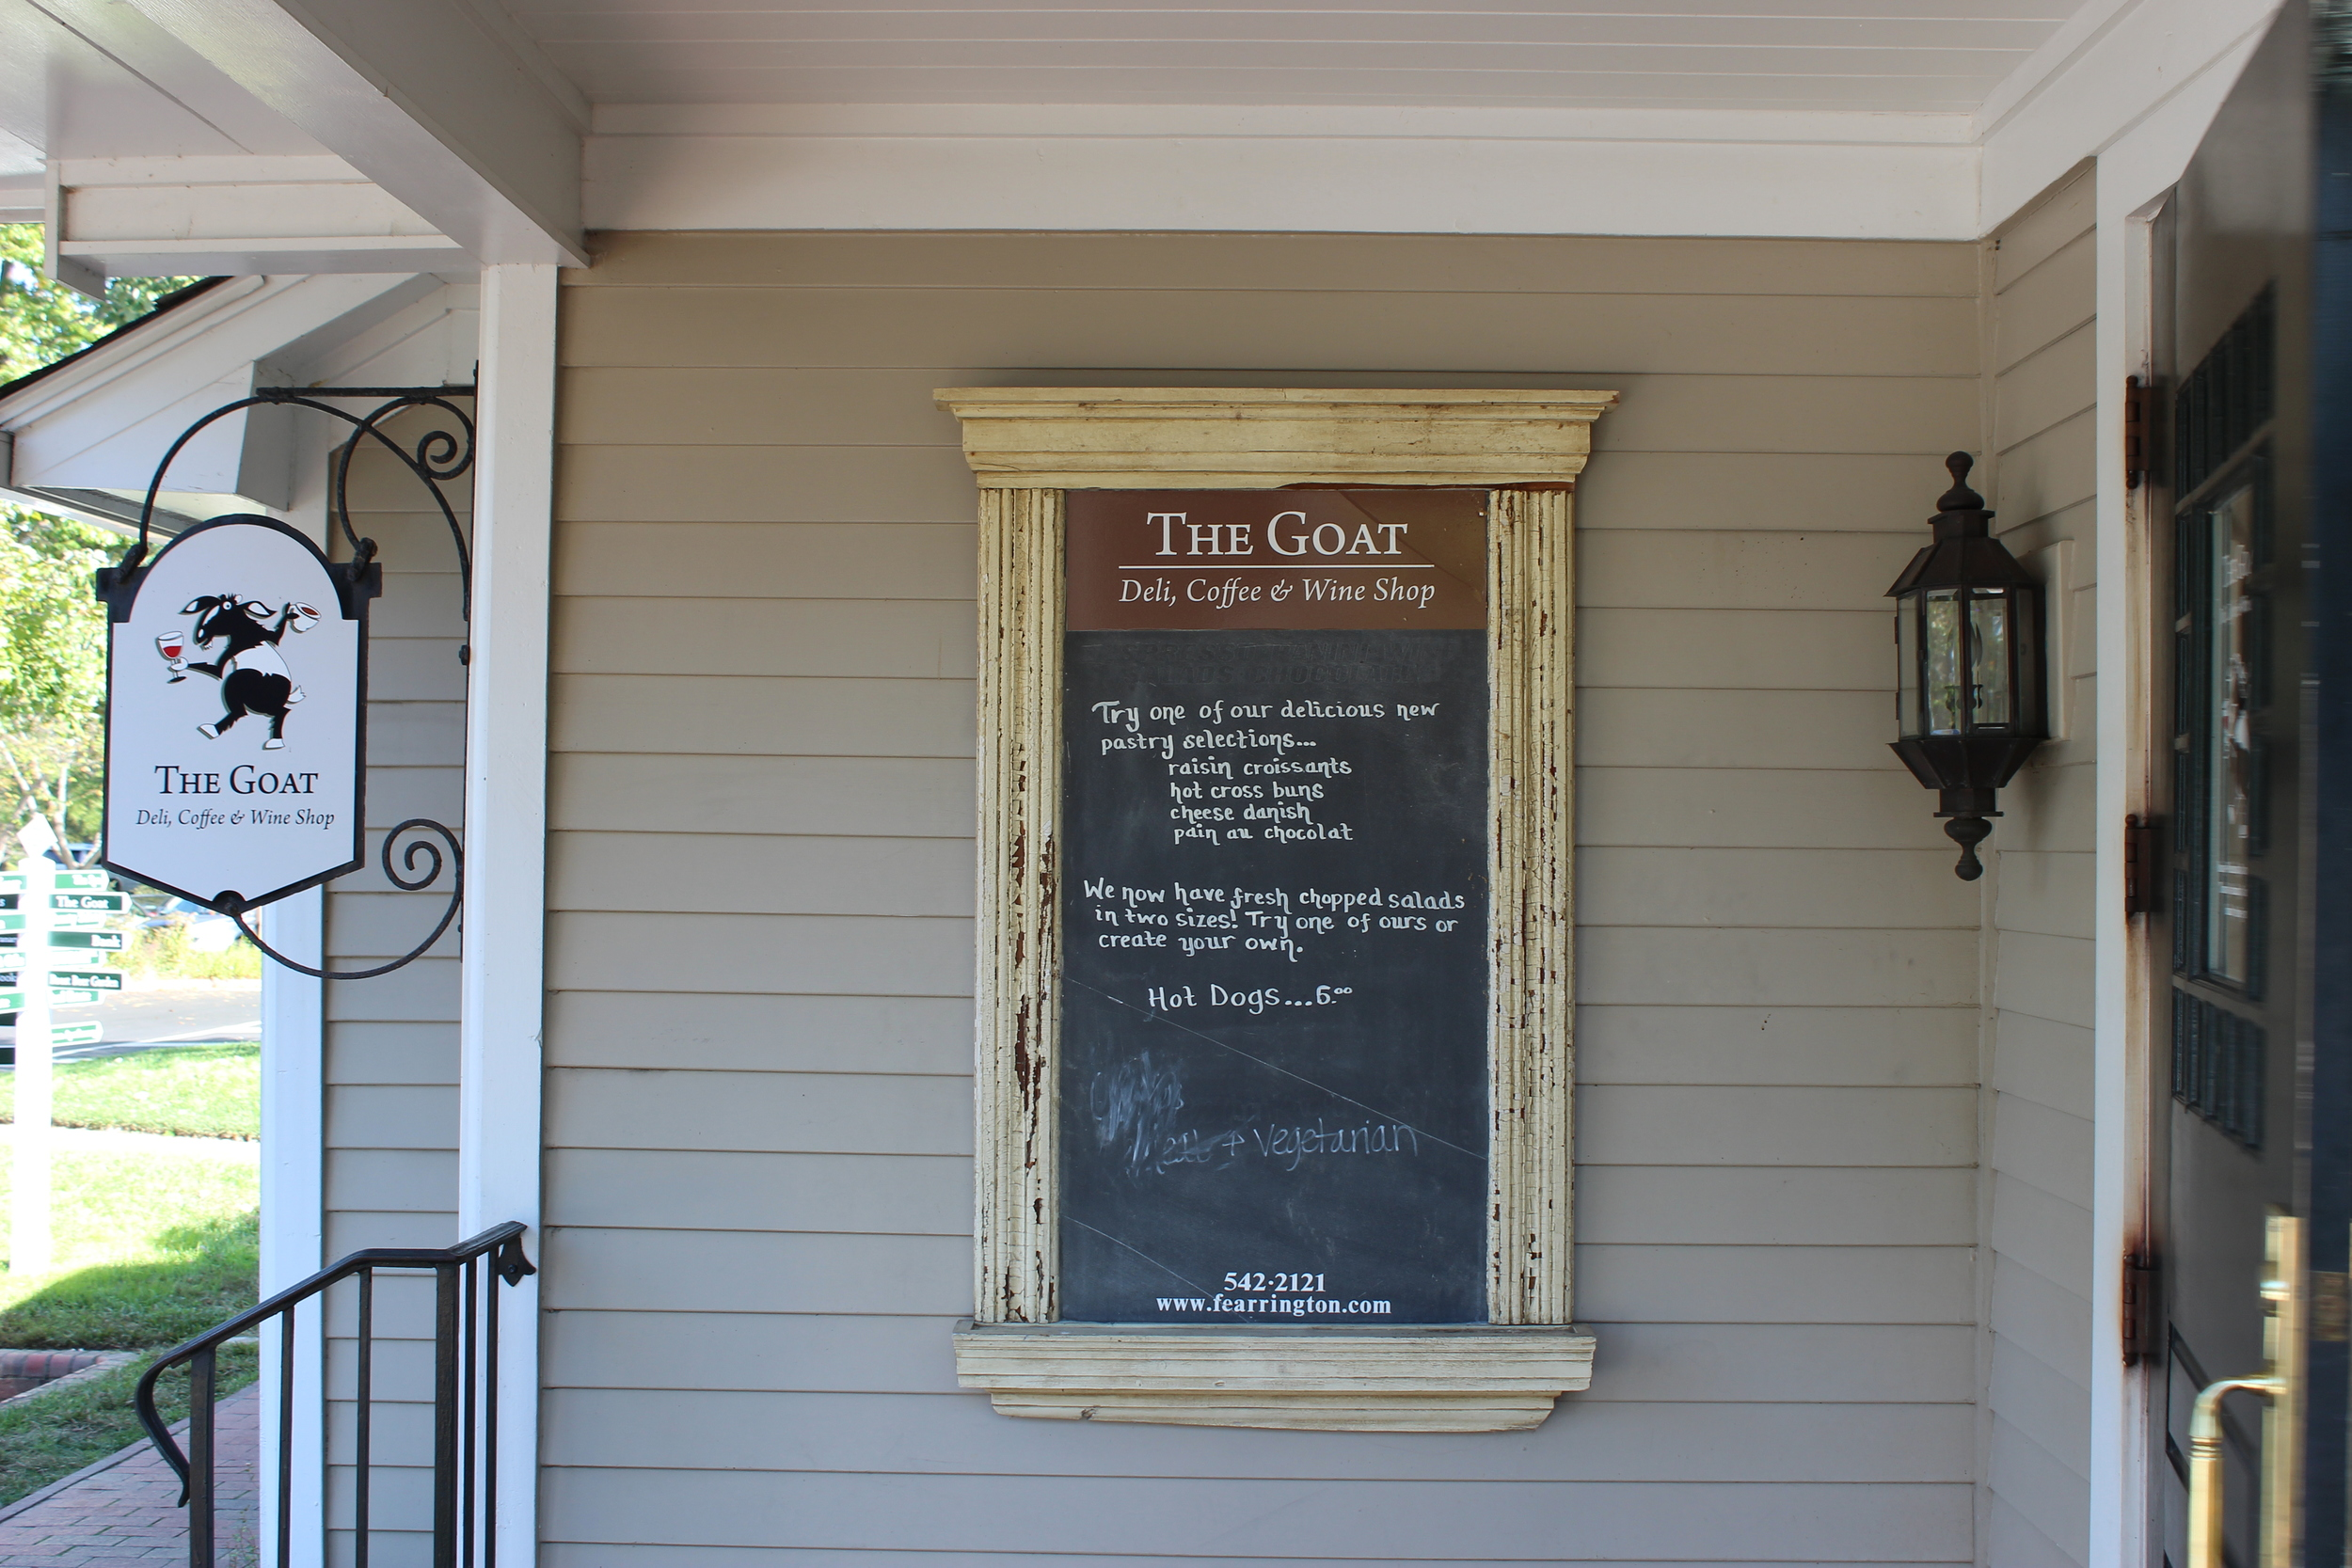 The Goat has a cafe feel, with fresh prepared chopped salads, soups, coffee, and sandwiches.  There is a second floor with a great view, and wifi too!